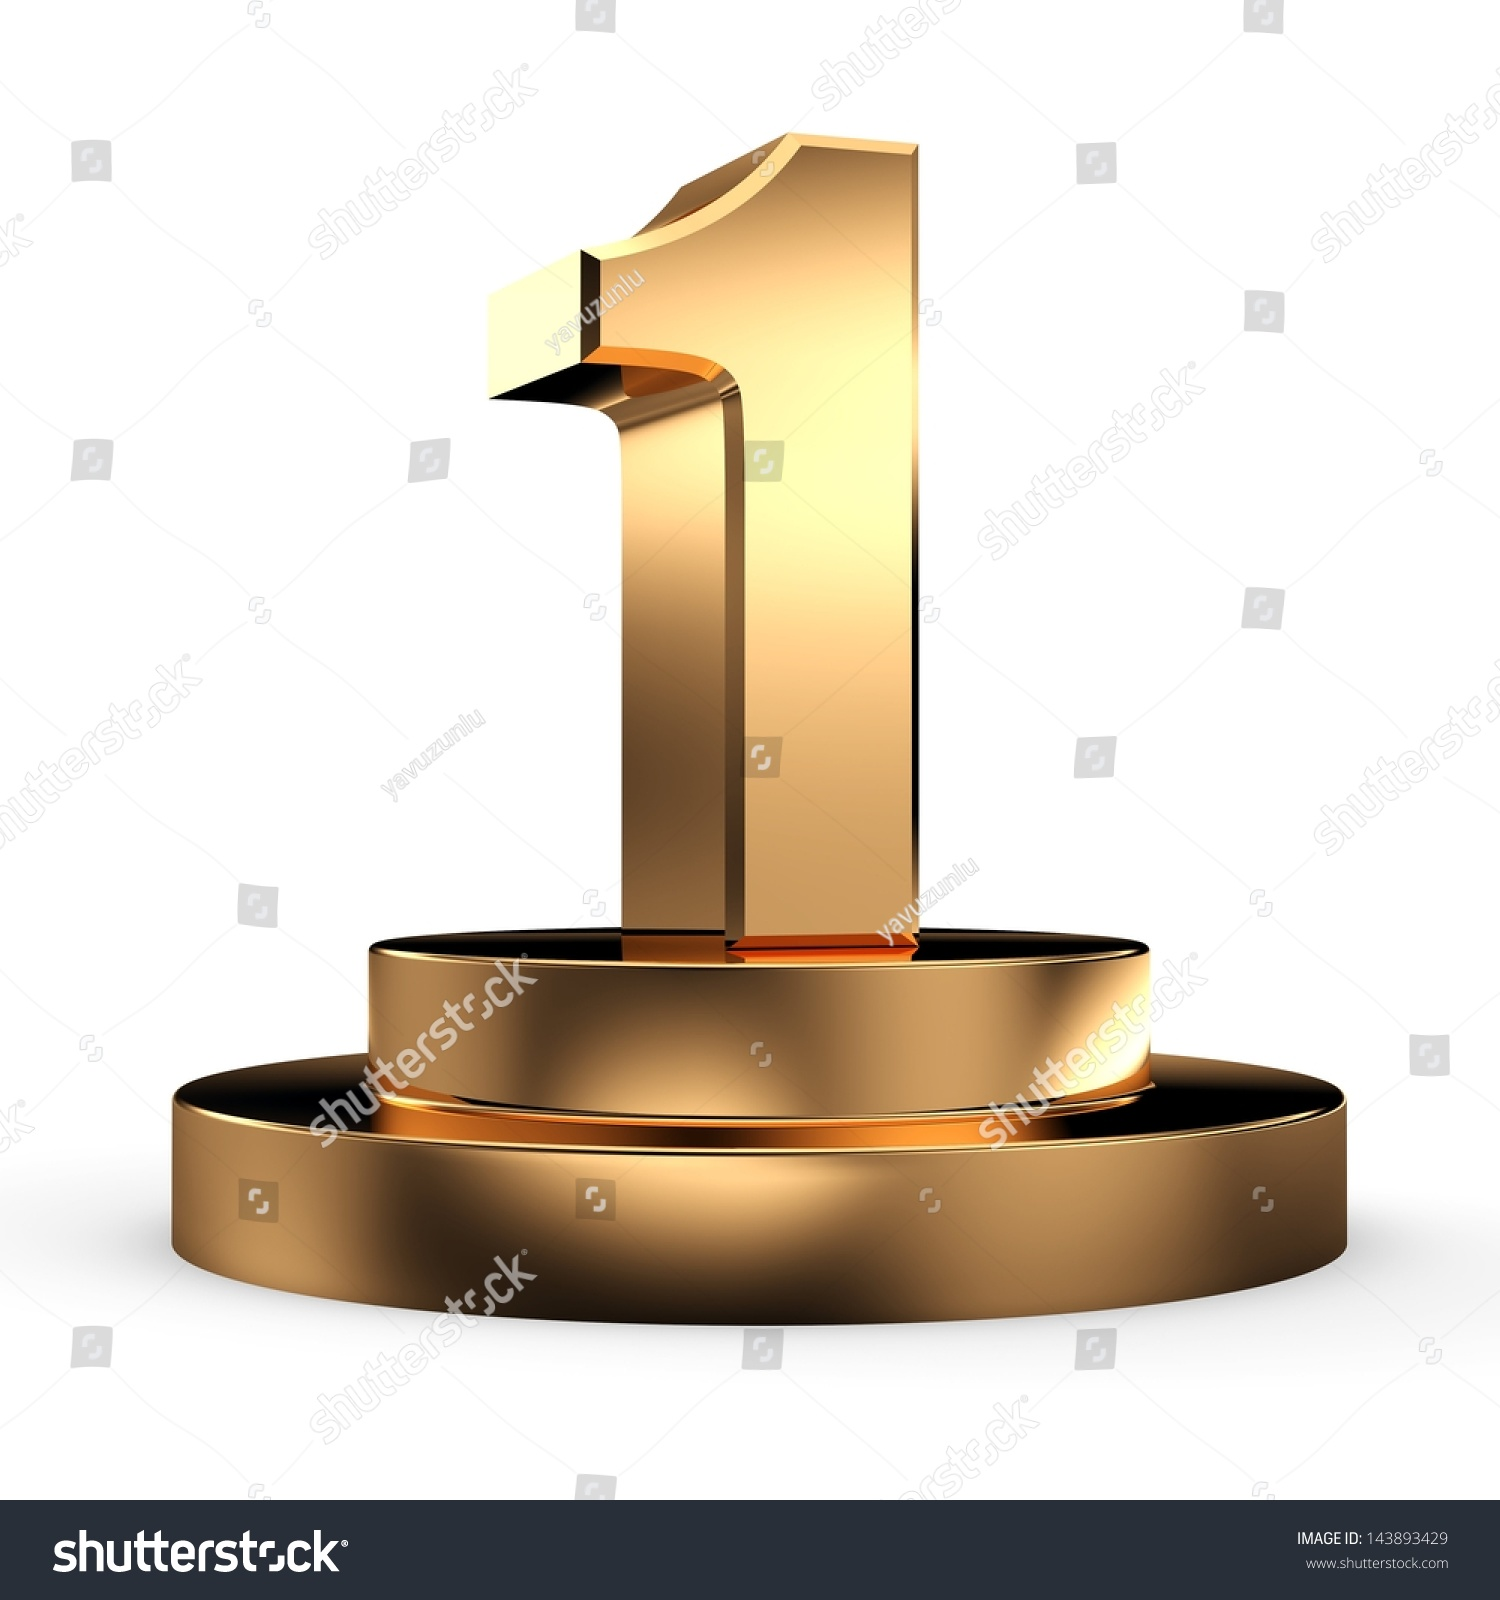 3d Gold Number 1 From My Number Collection Stock Photo 143893429   Shutterstock